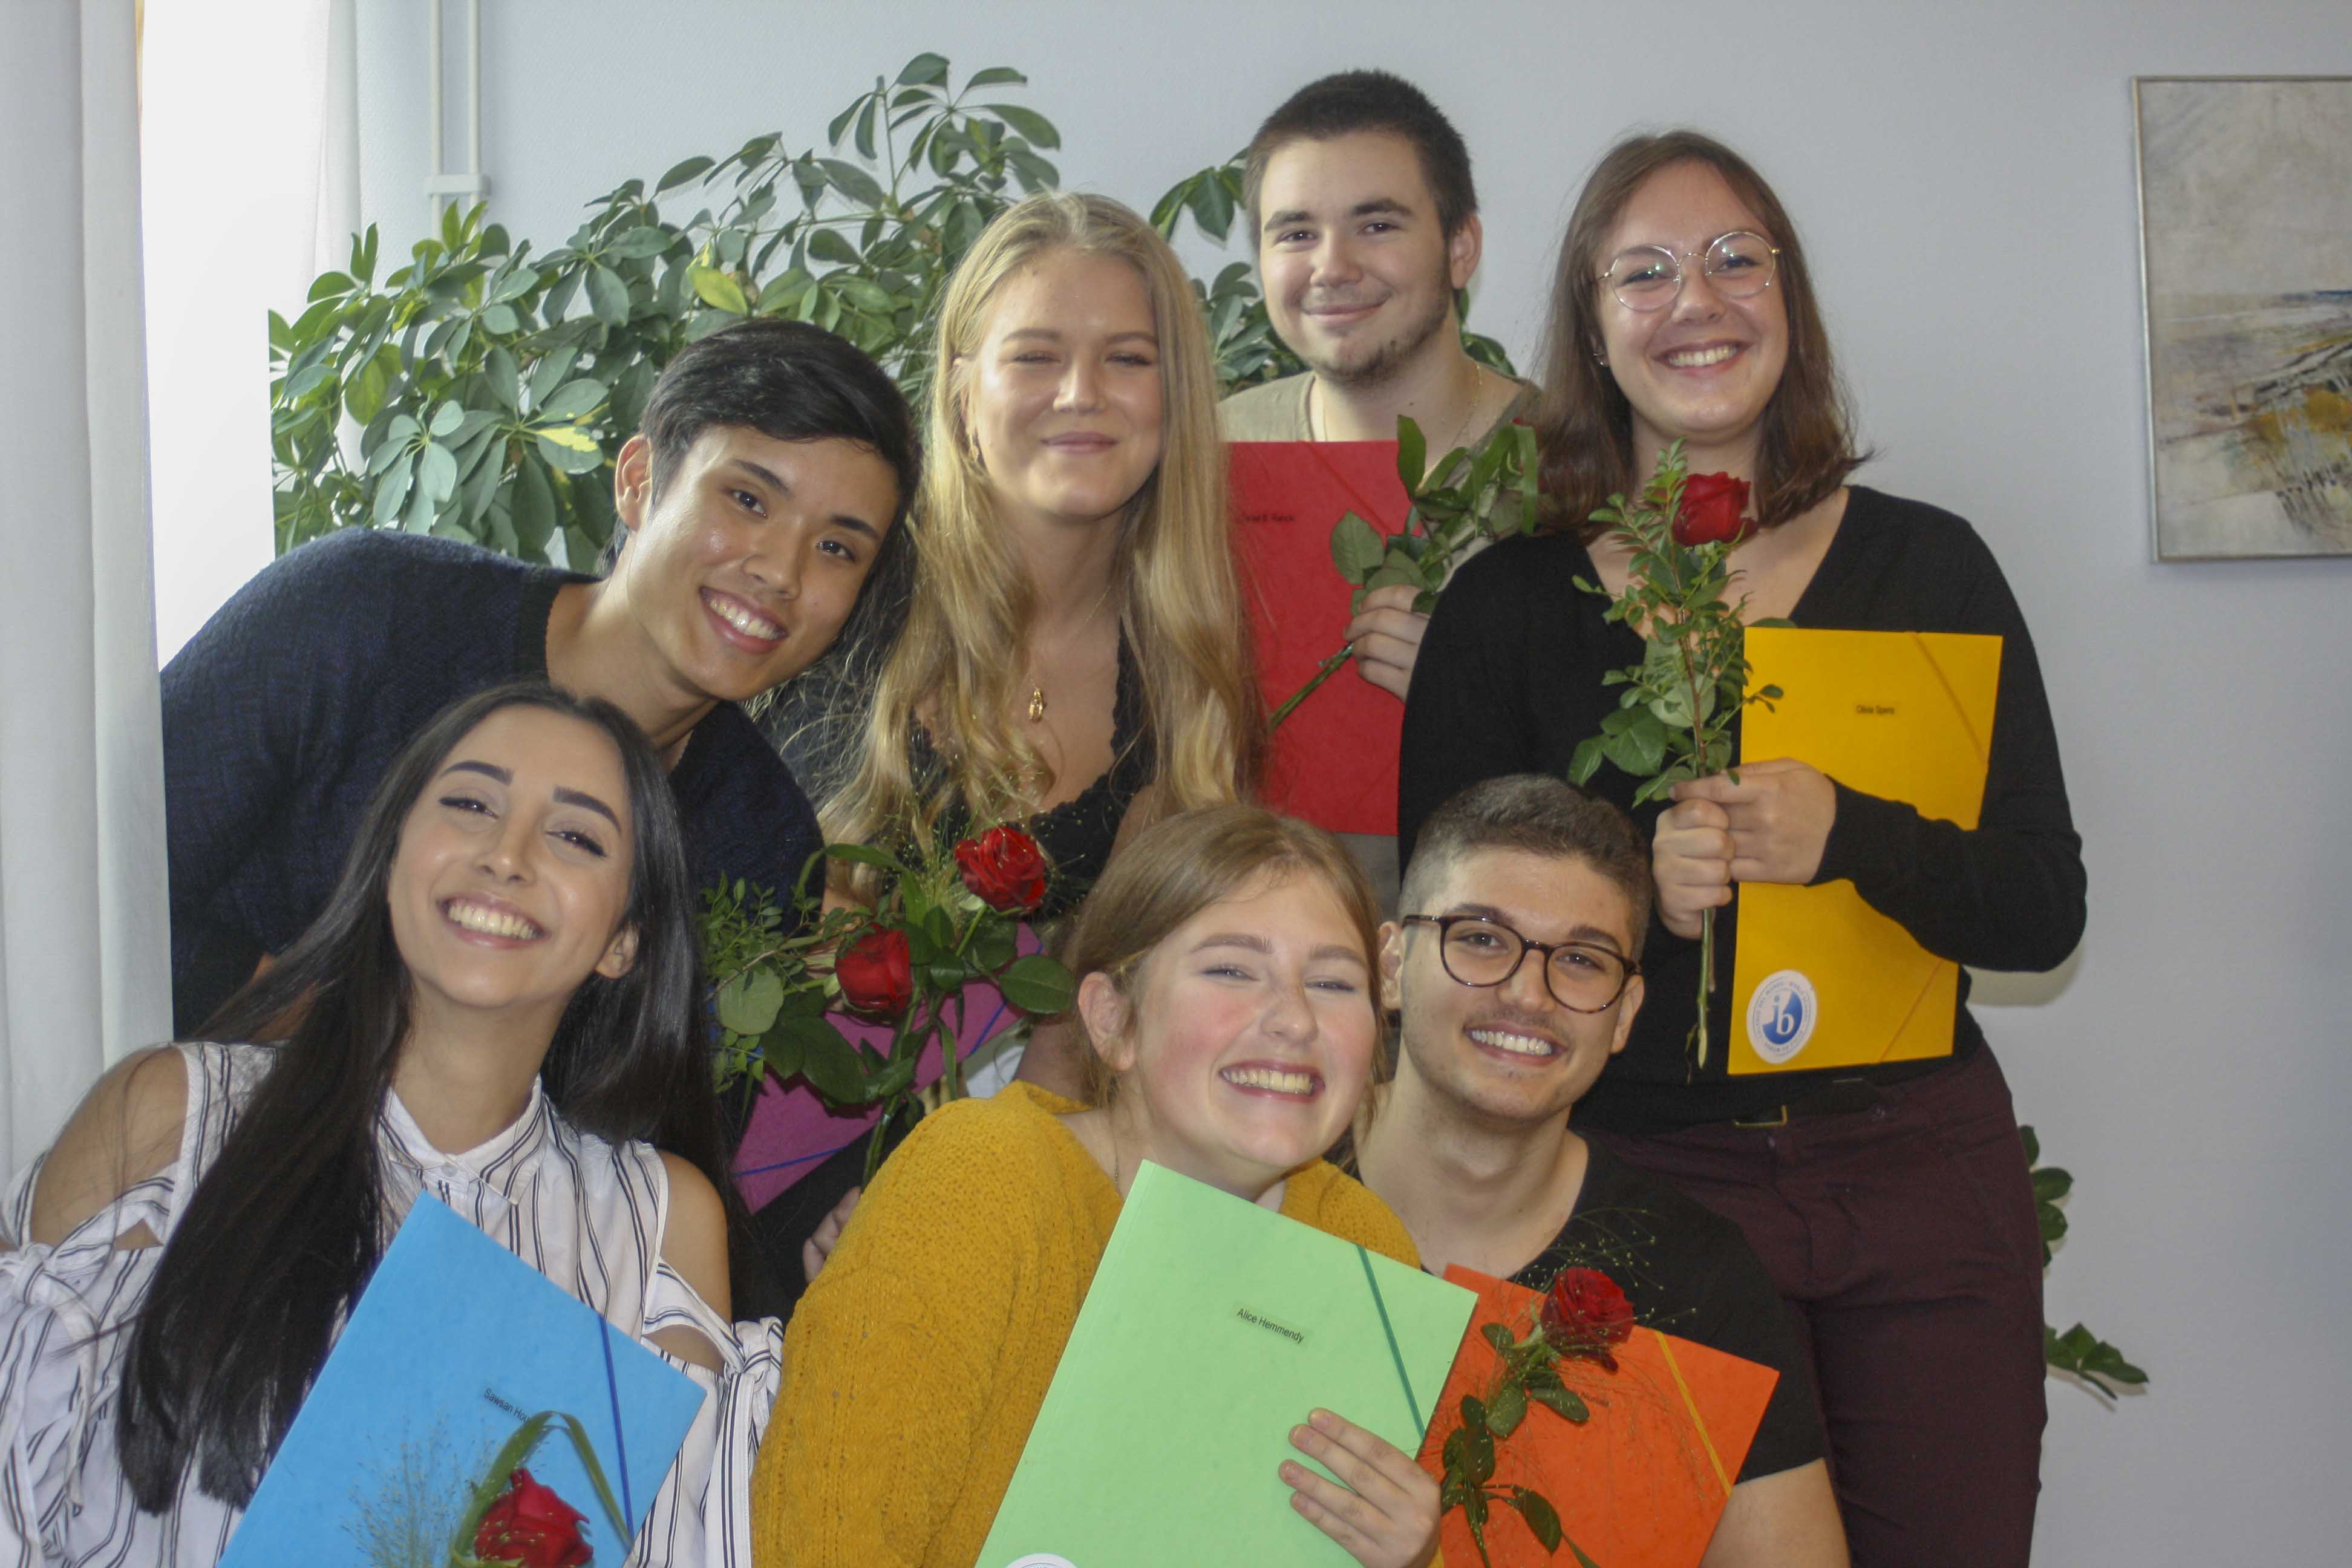 Seven out of fourteen came to the Diploma ceremony.